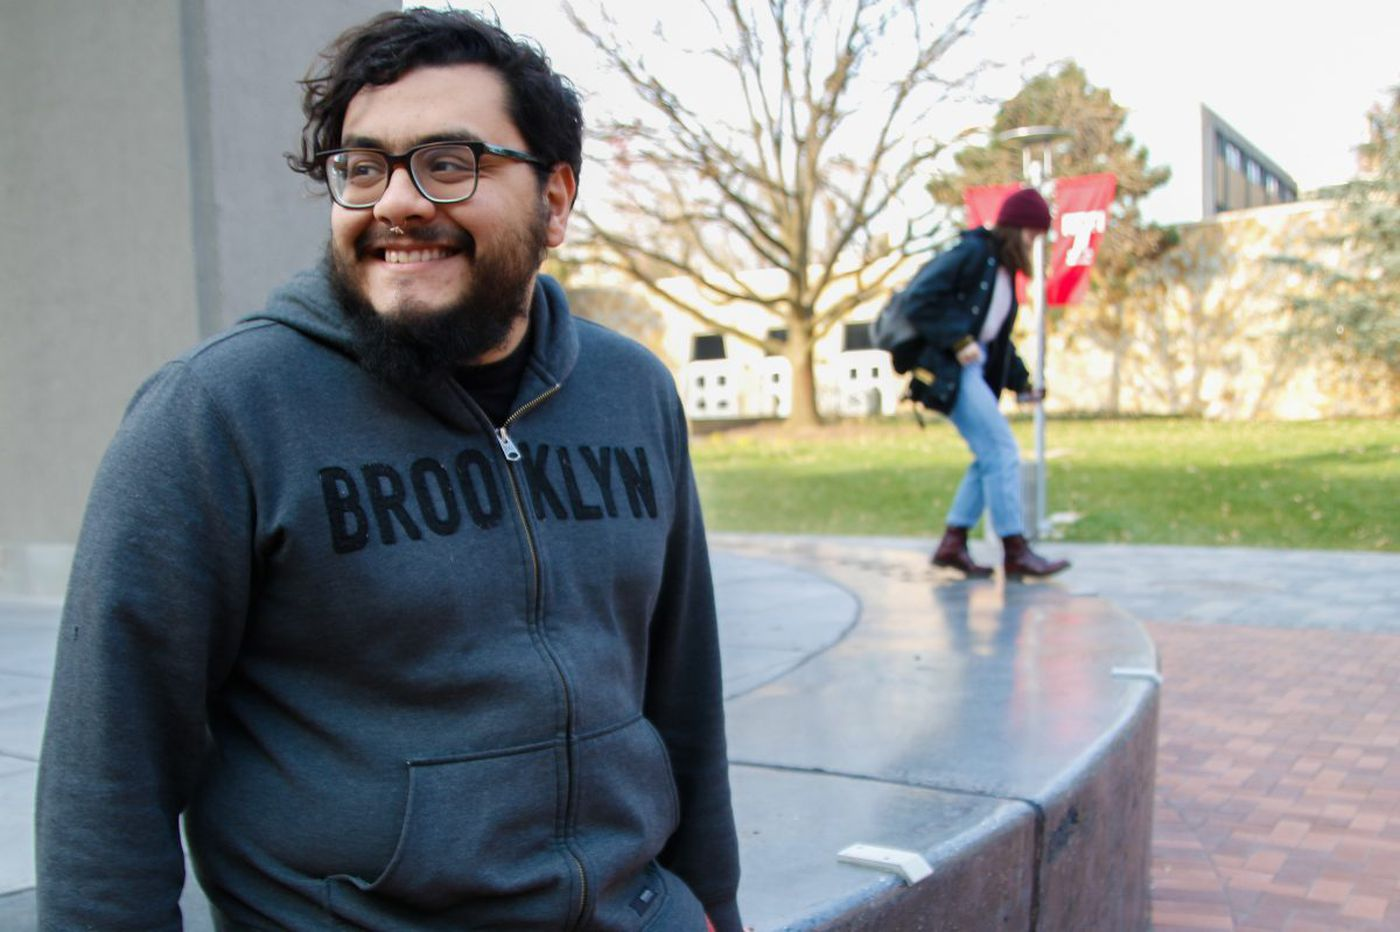 Meet the Manayunk resident who went viral after a single-vote election win